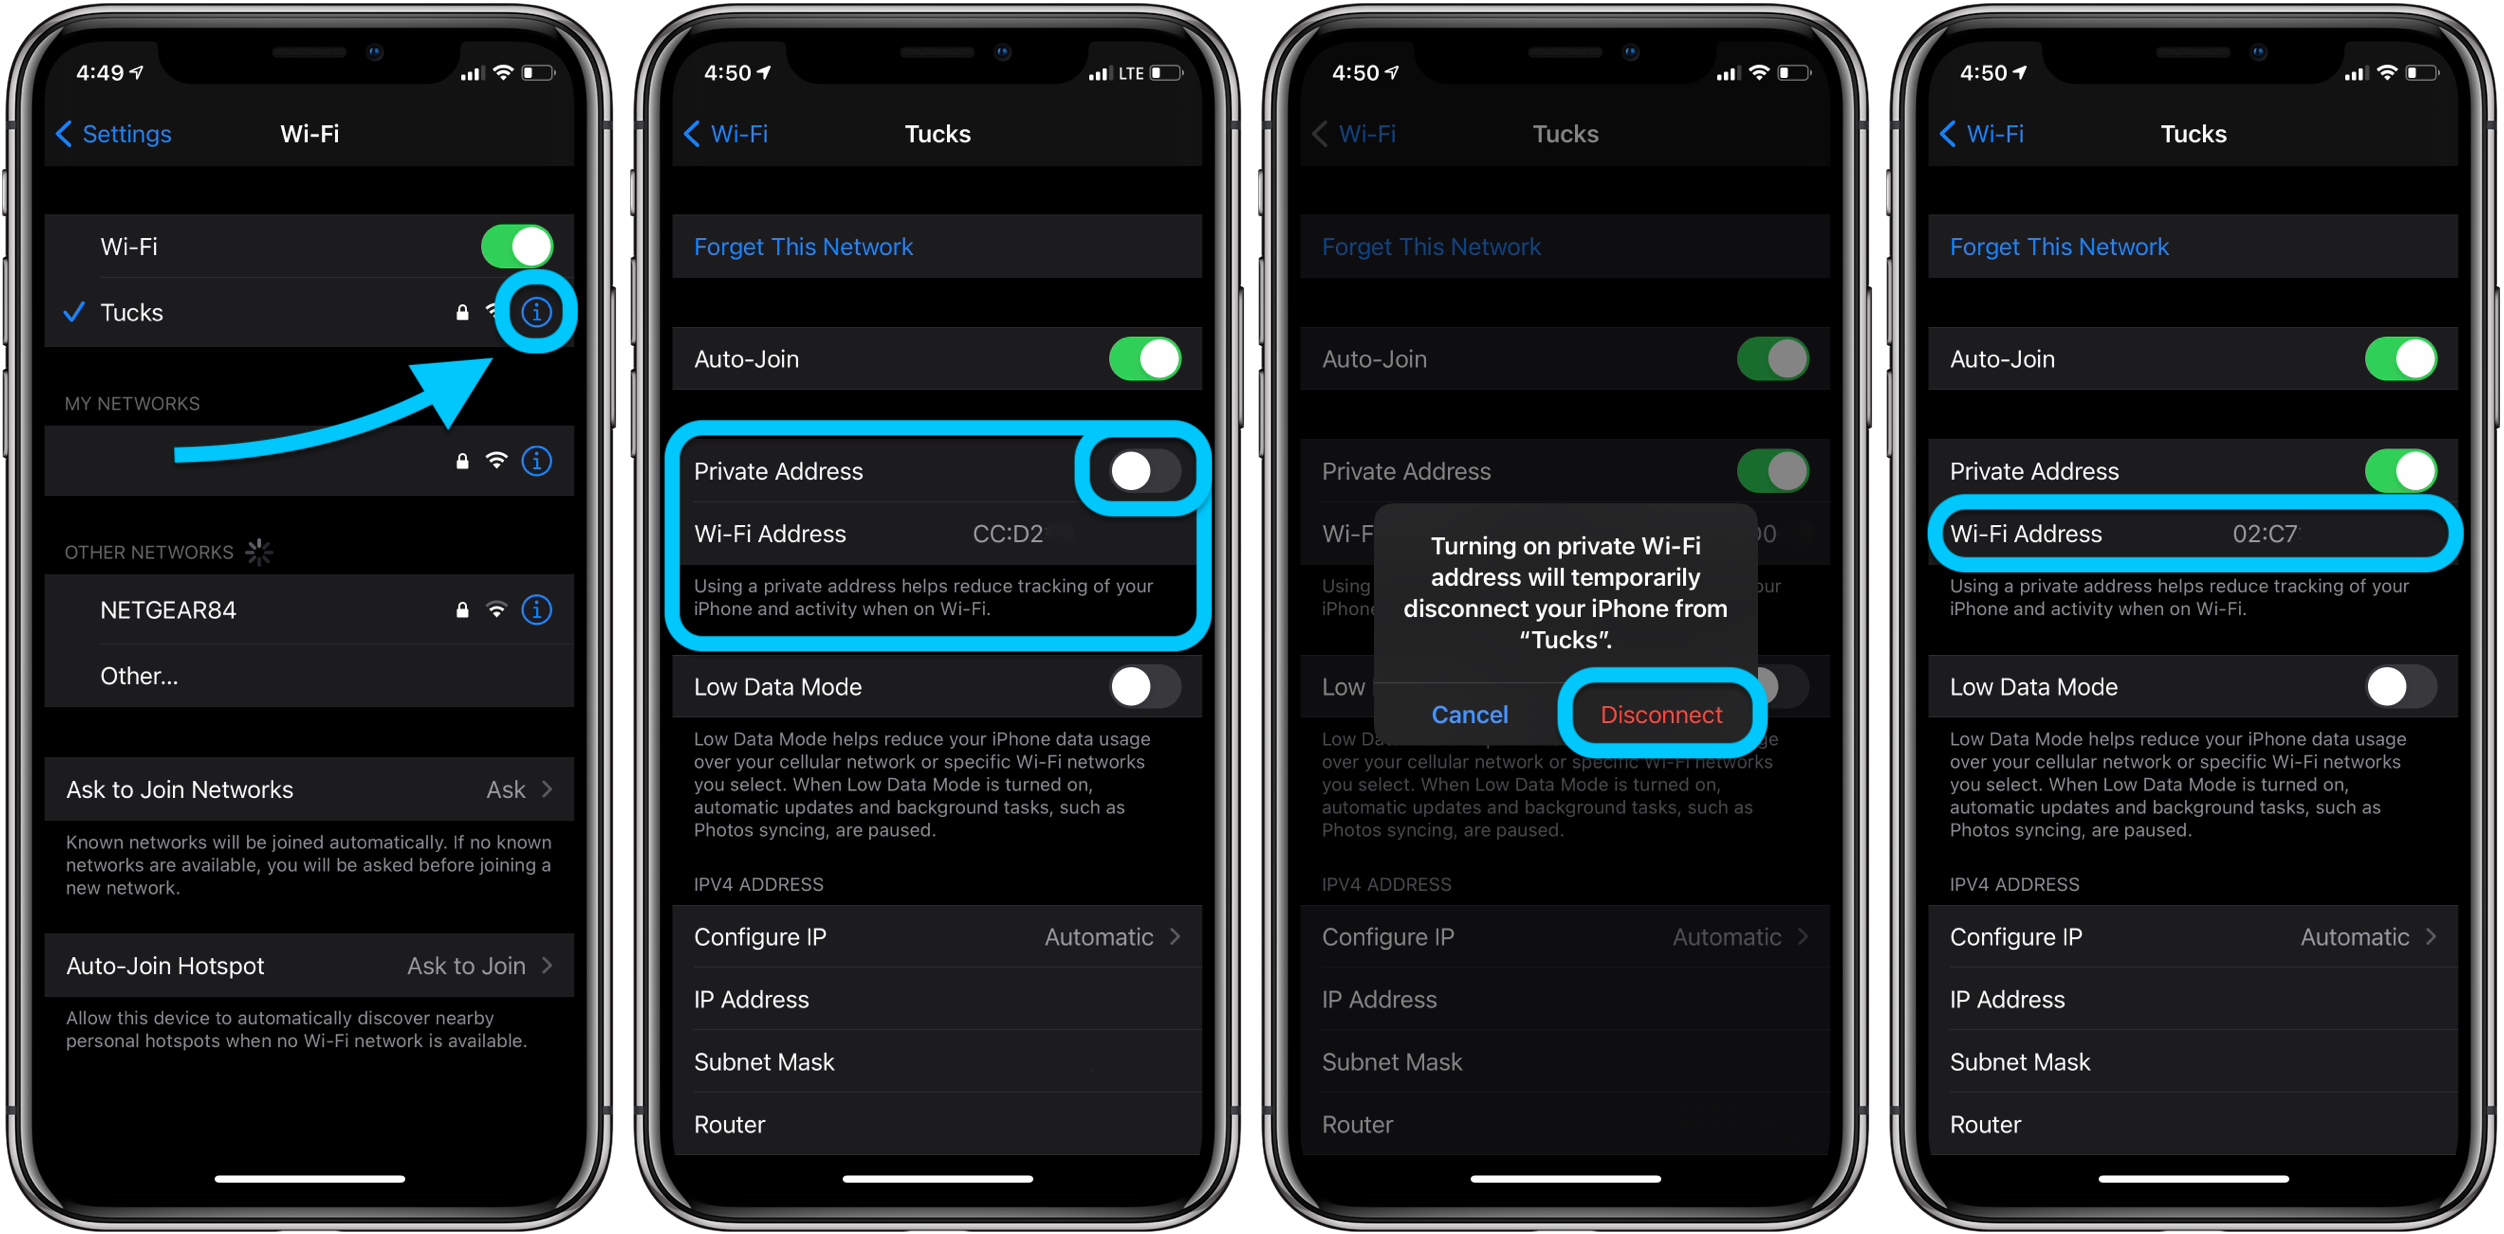 How to use private WiFi MAC address on iPhone in iOS 14